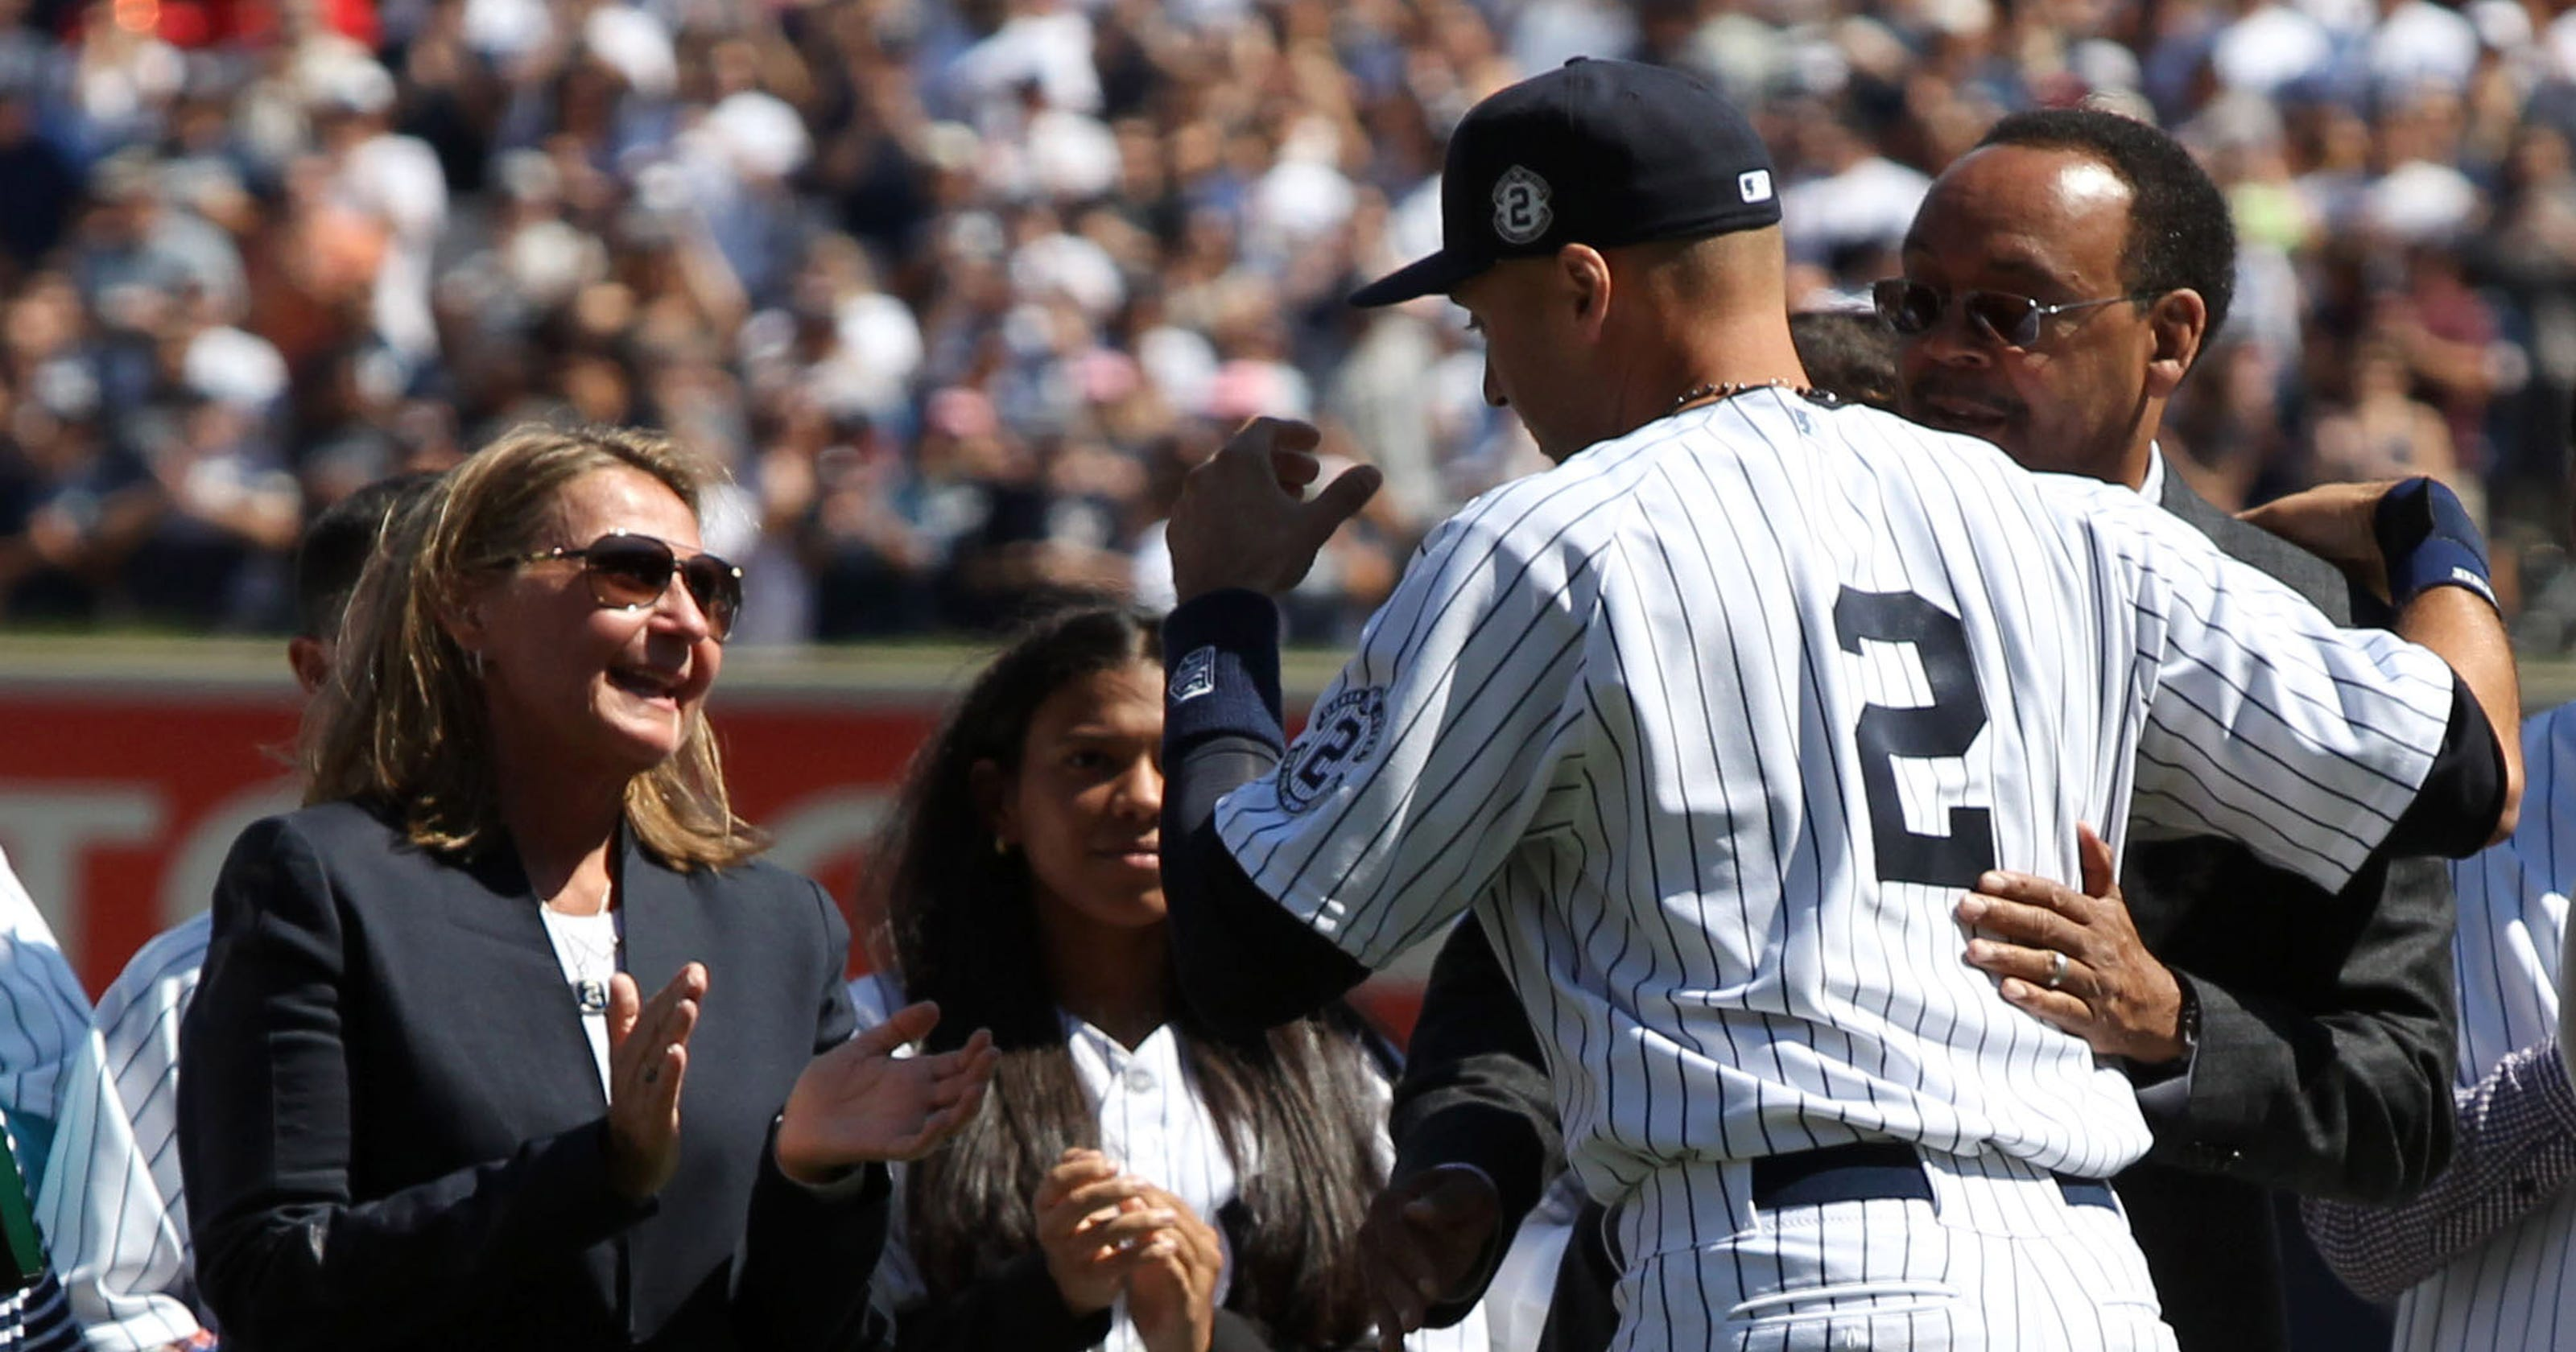 Jeter's parents on end of era: 'This won't be easy'